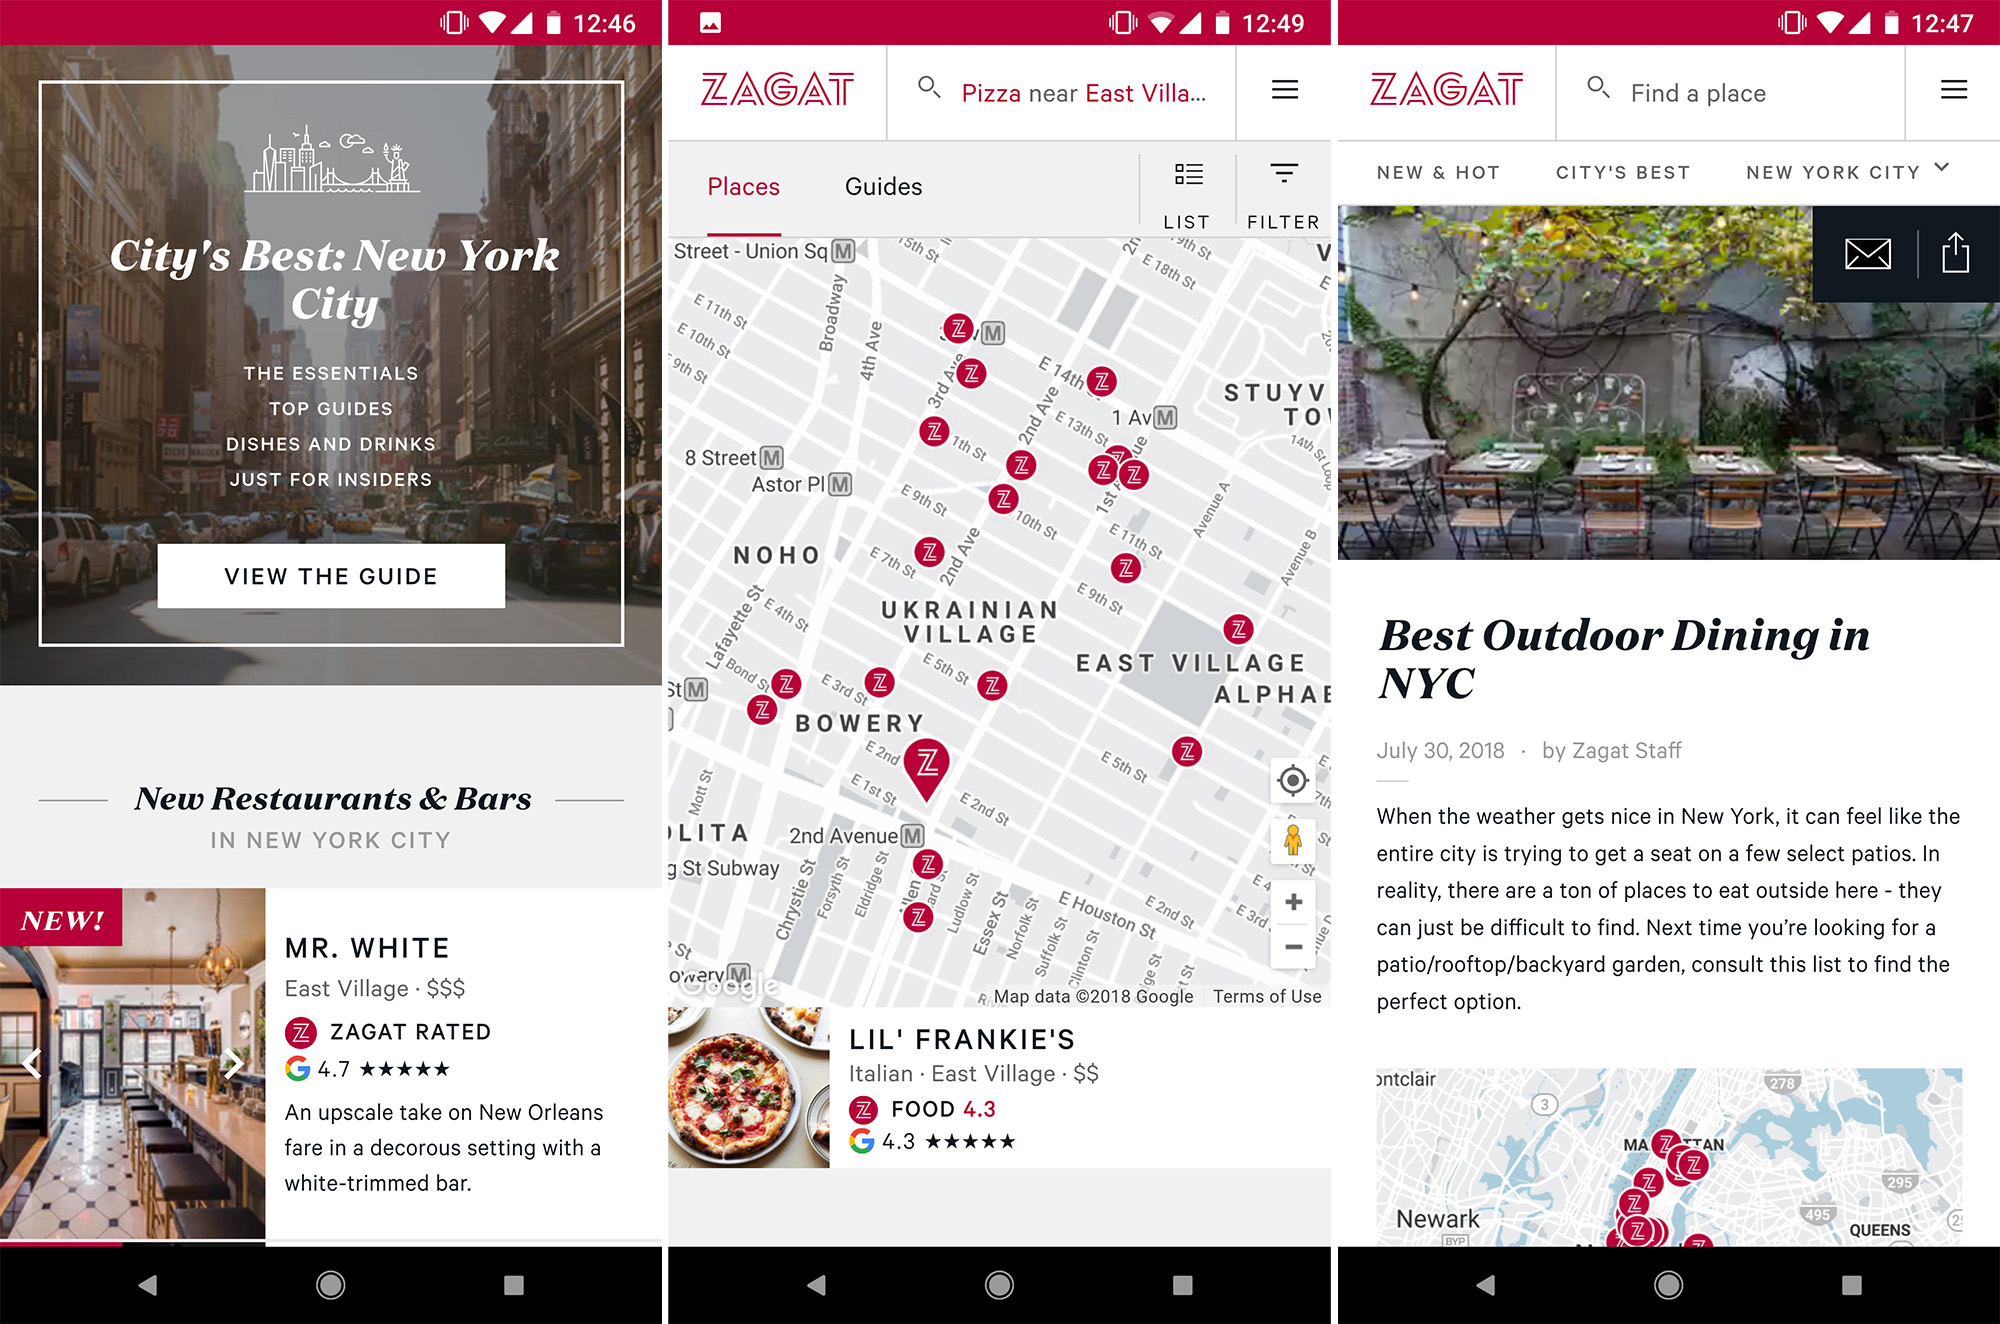 Zagat app gets a complete UI overhaul in latest update